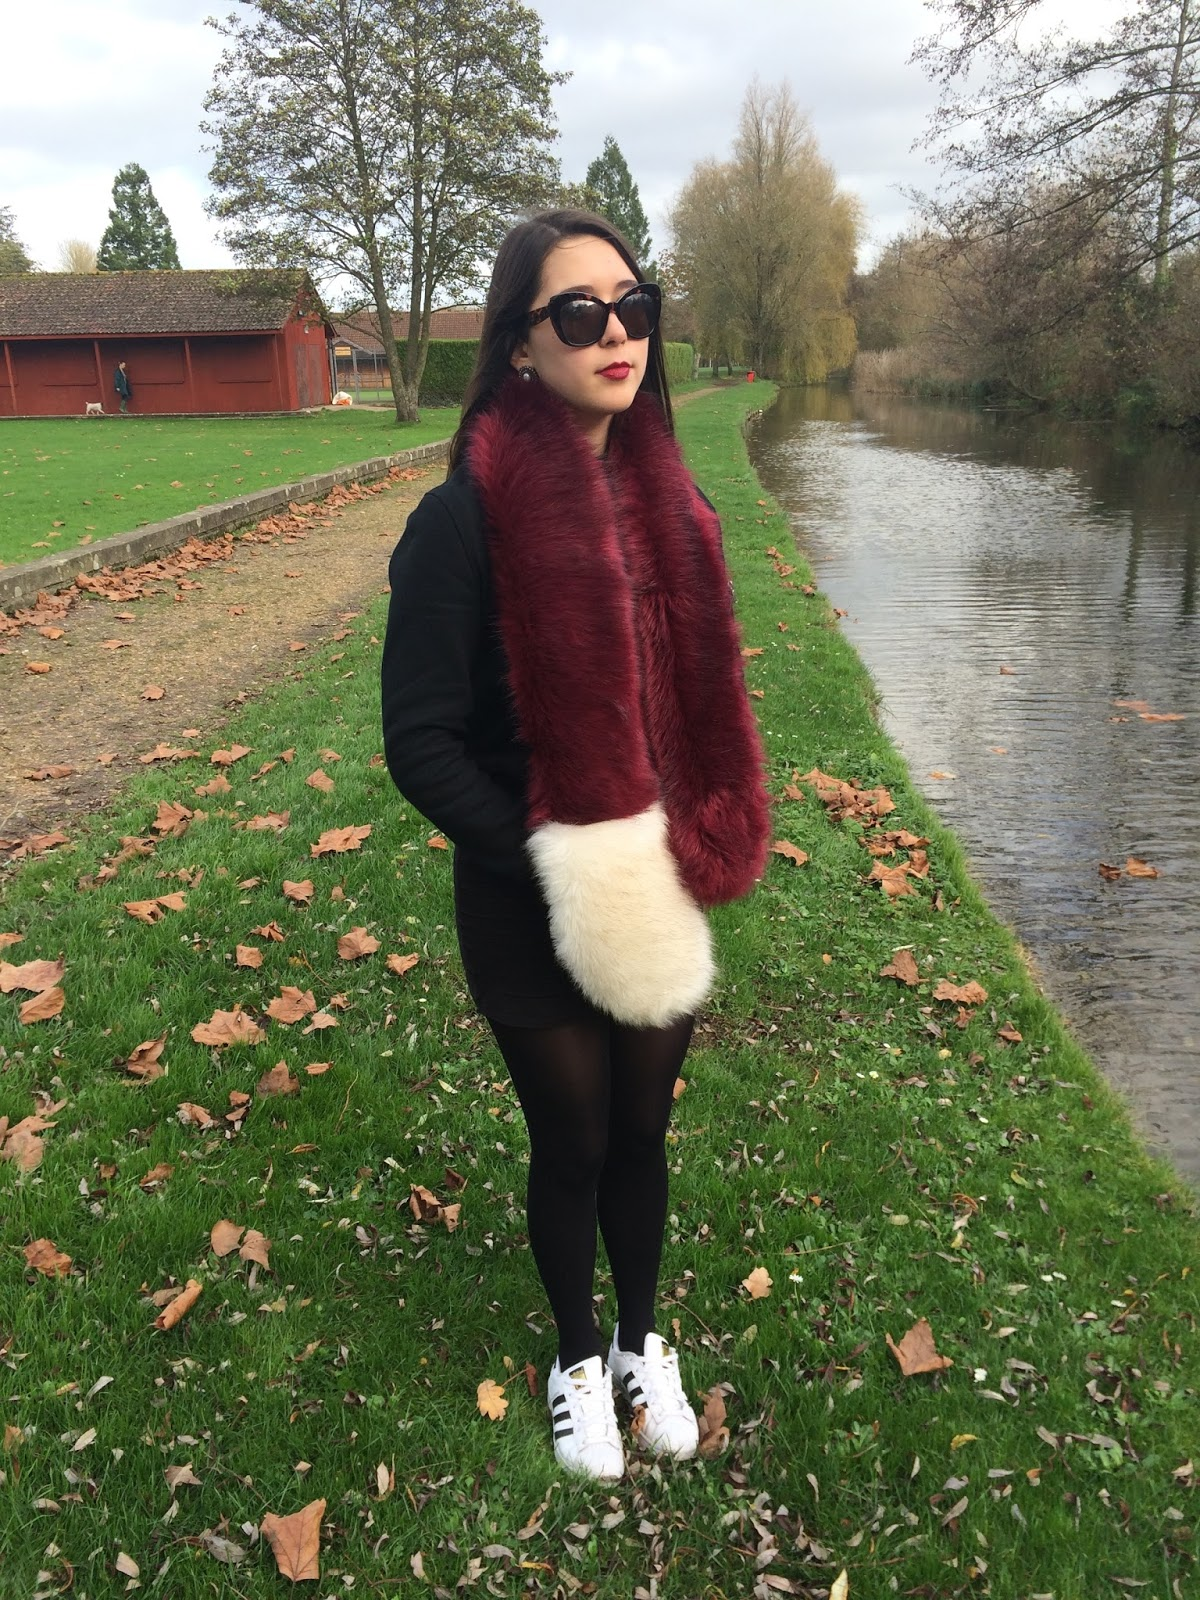 OOTD outfit post, look street style fashion blogger, fur stole topshop